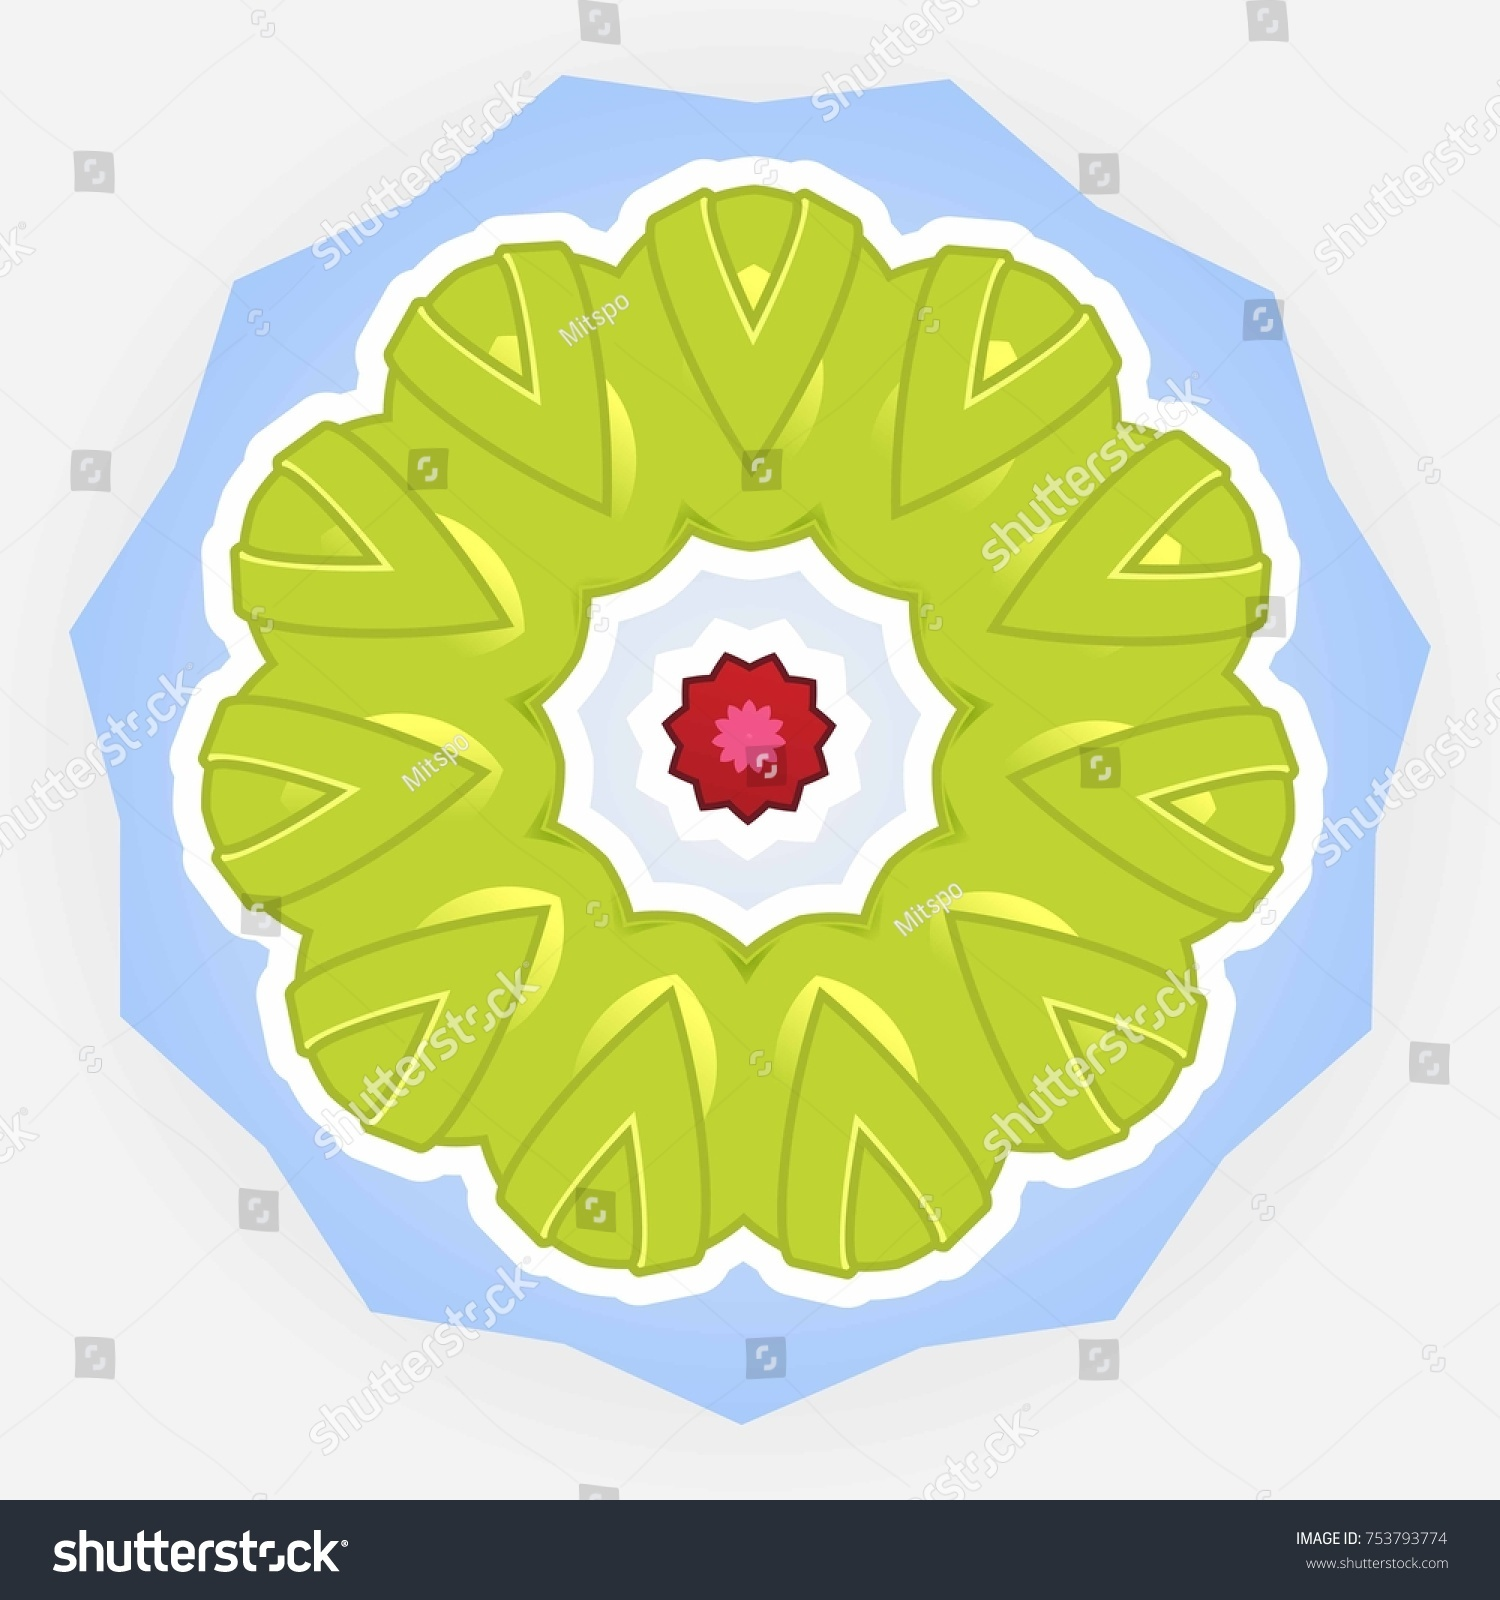 Calligraphy Abstract Floral Symmetry Element Vector Stock Vector HD ...